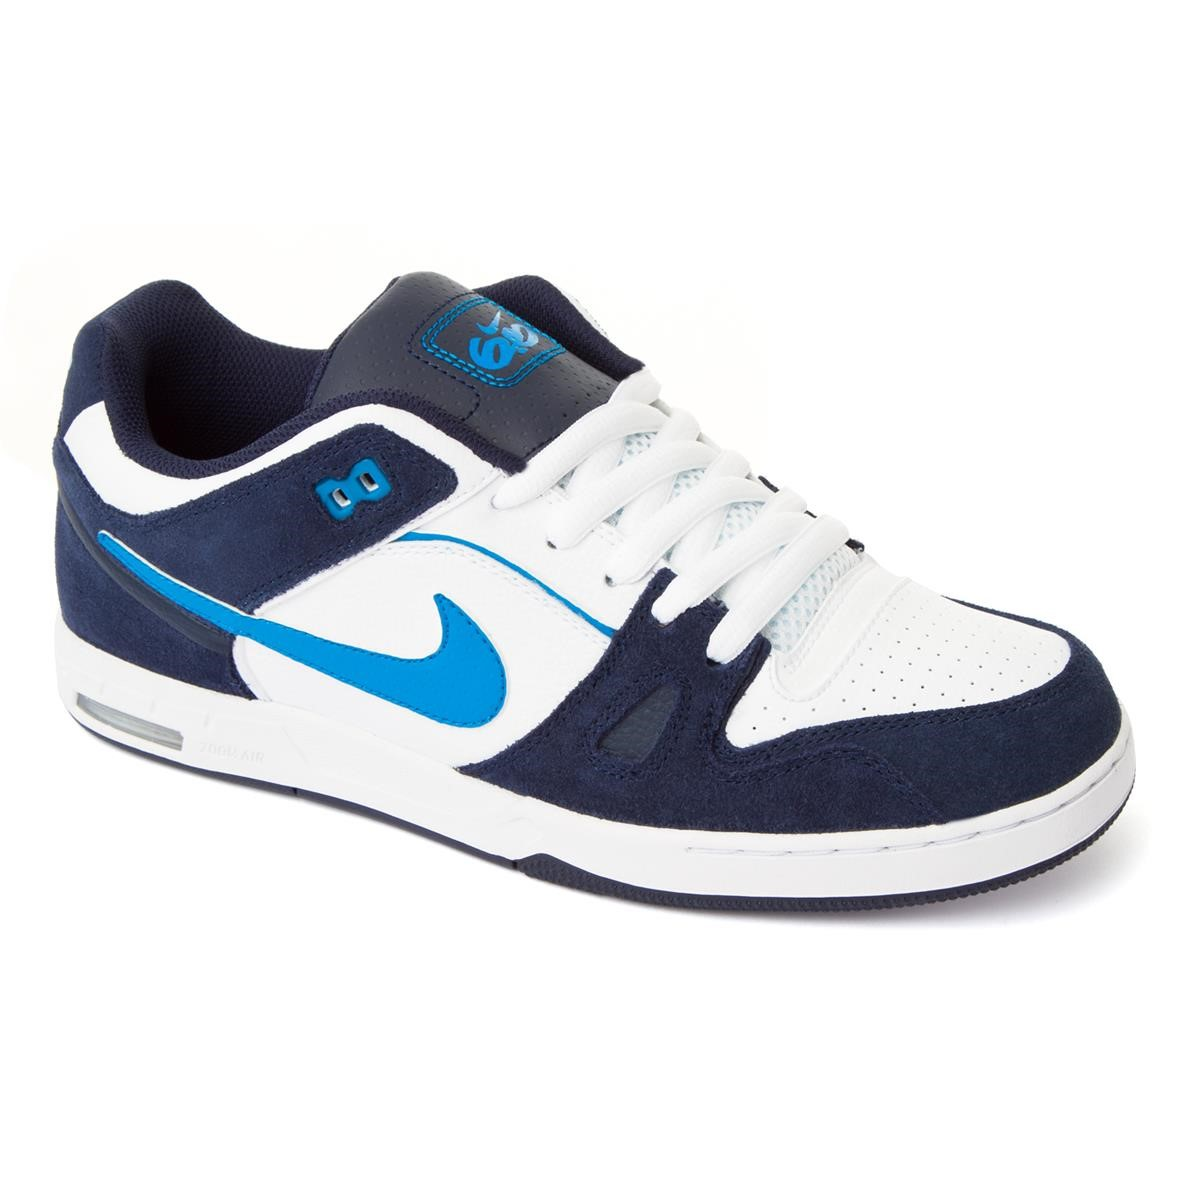 nike 6 0 schuhe zoom oncore 2 white neptune blue mid navy. Black Bedroom Furniture Sets. Home Design Ideas